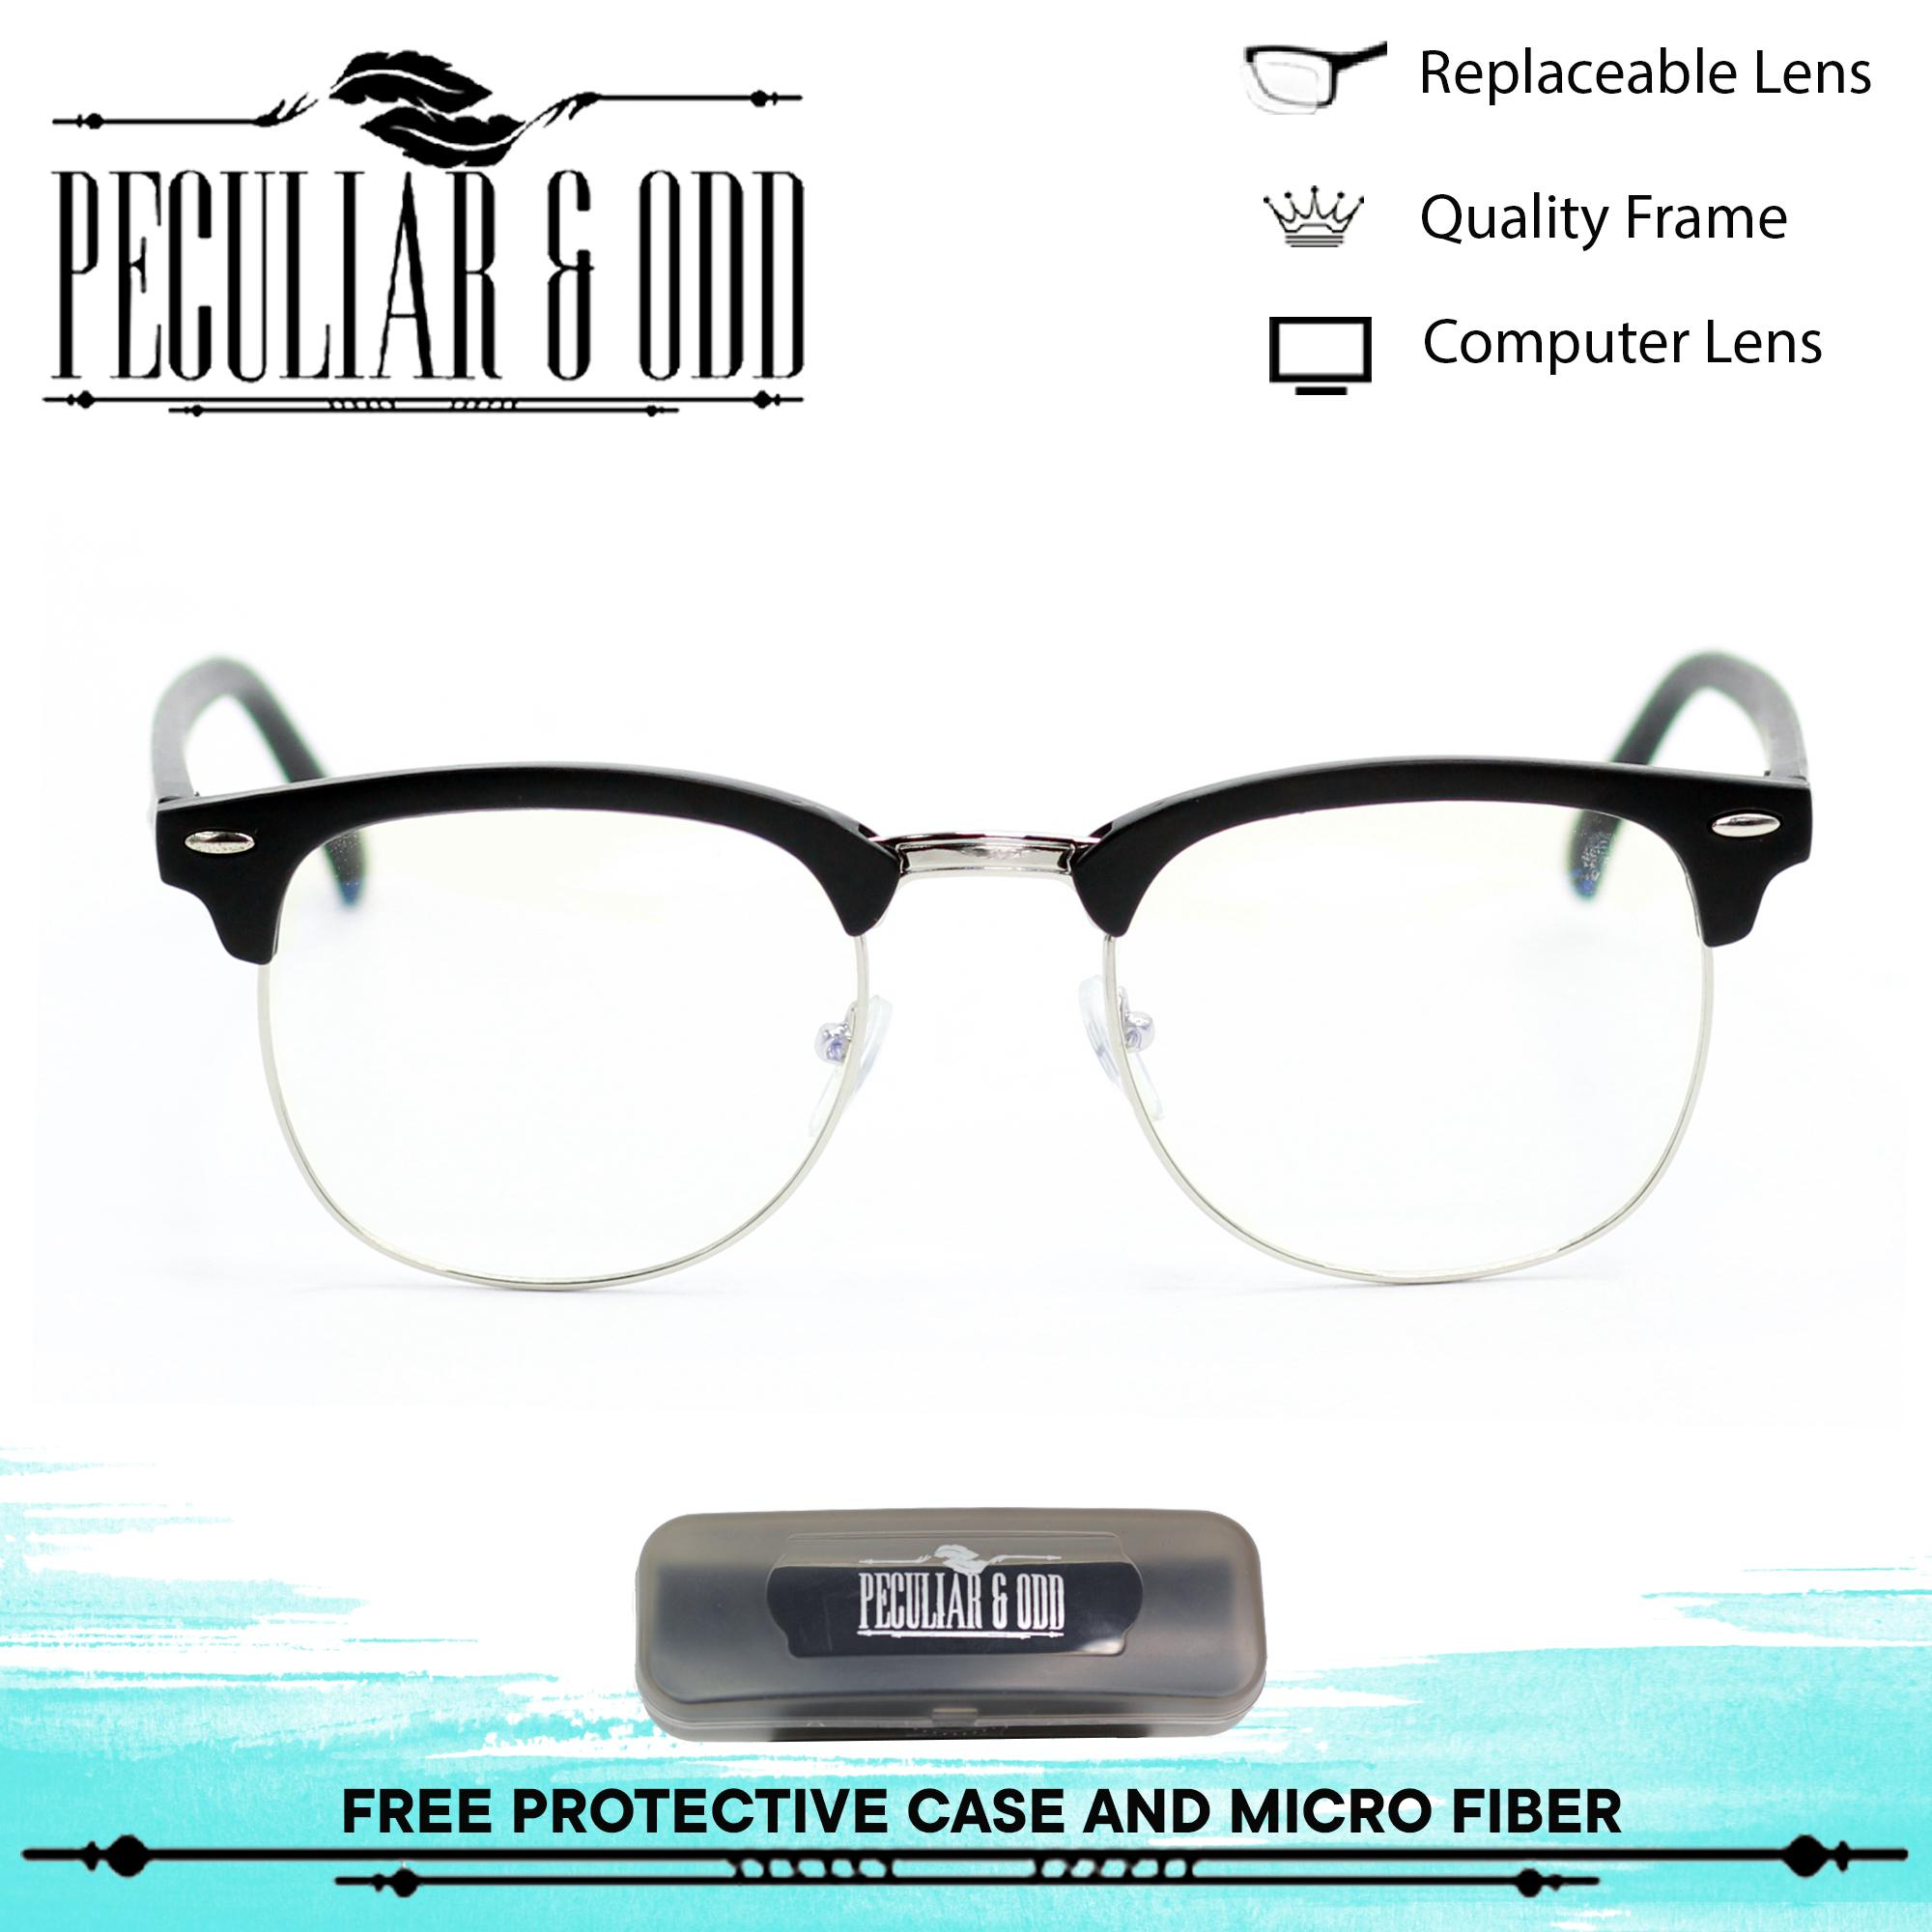 1a3c8d234c7 Eyeglasses for sale - Reading Glasses online brands